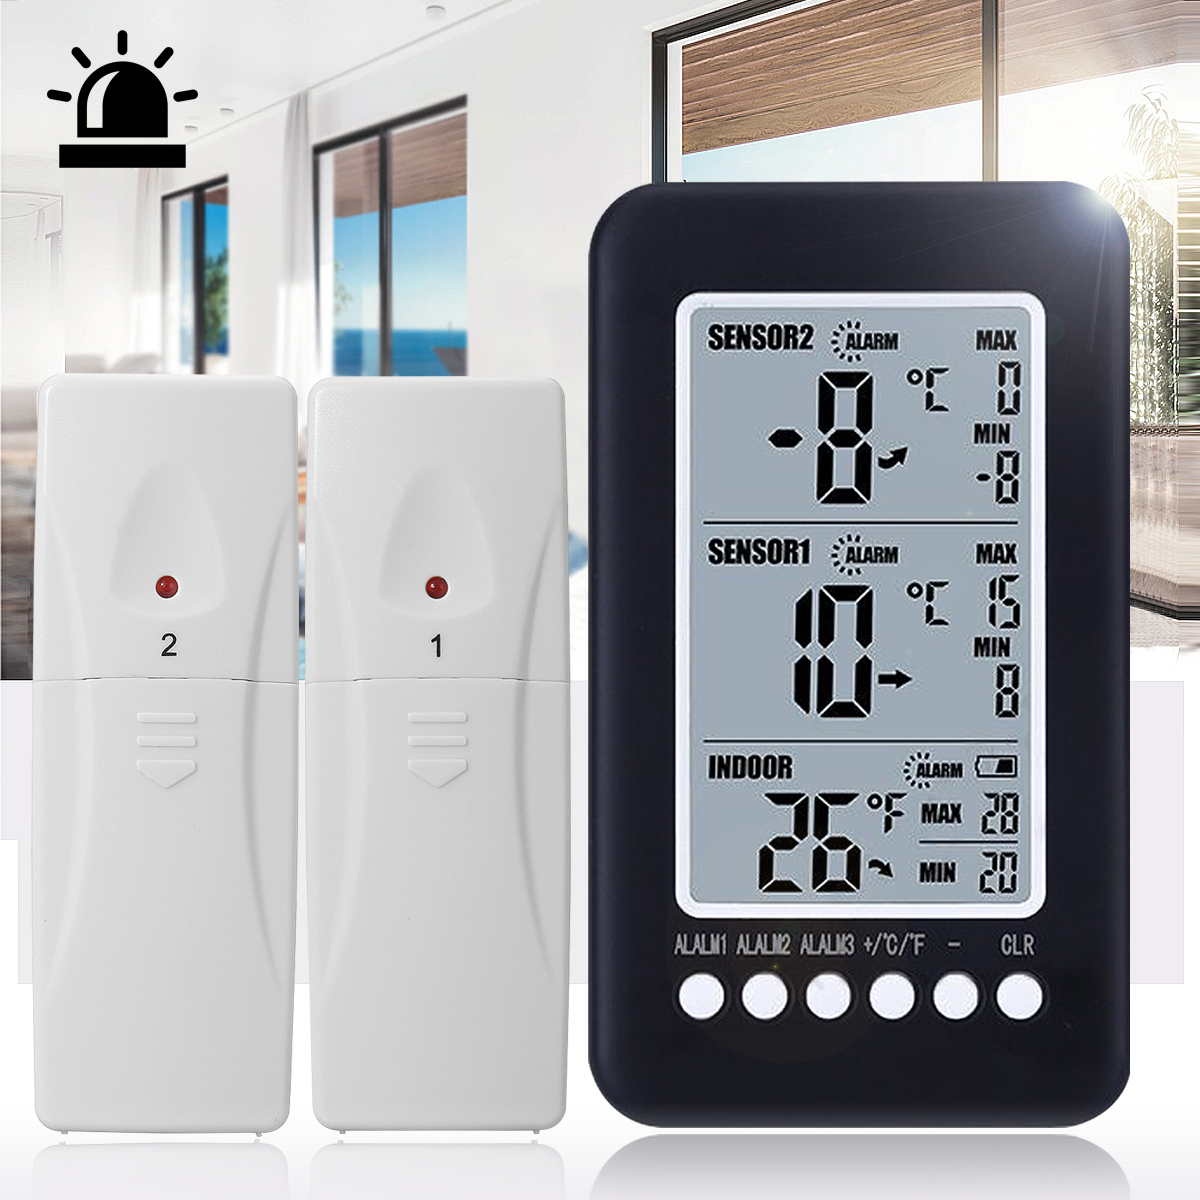 Wireless Digital LCD Indoor Thermometer Monitor Weather Station with Temperature Gauge Meter Freezer Alarm with 2 Sensor